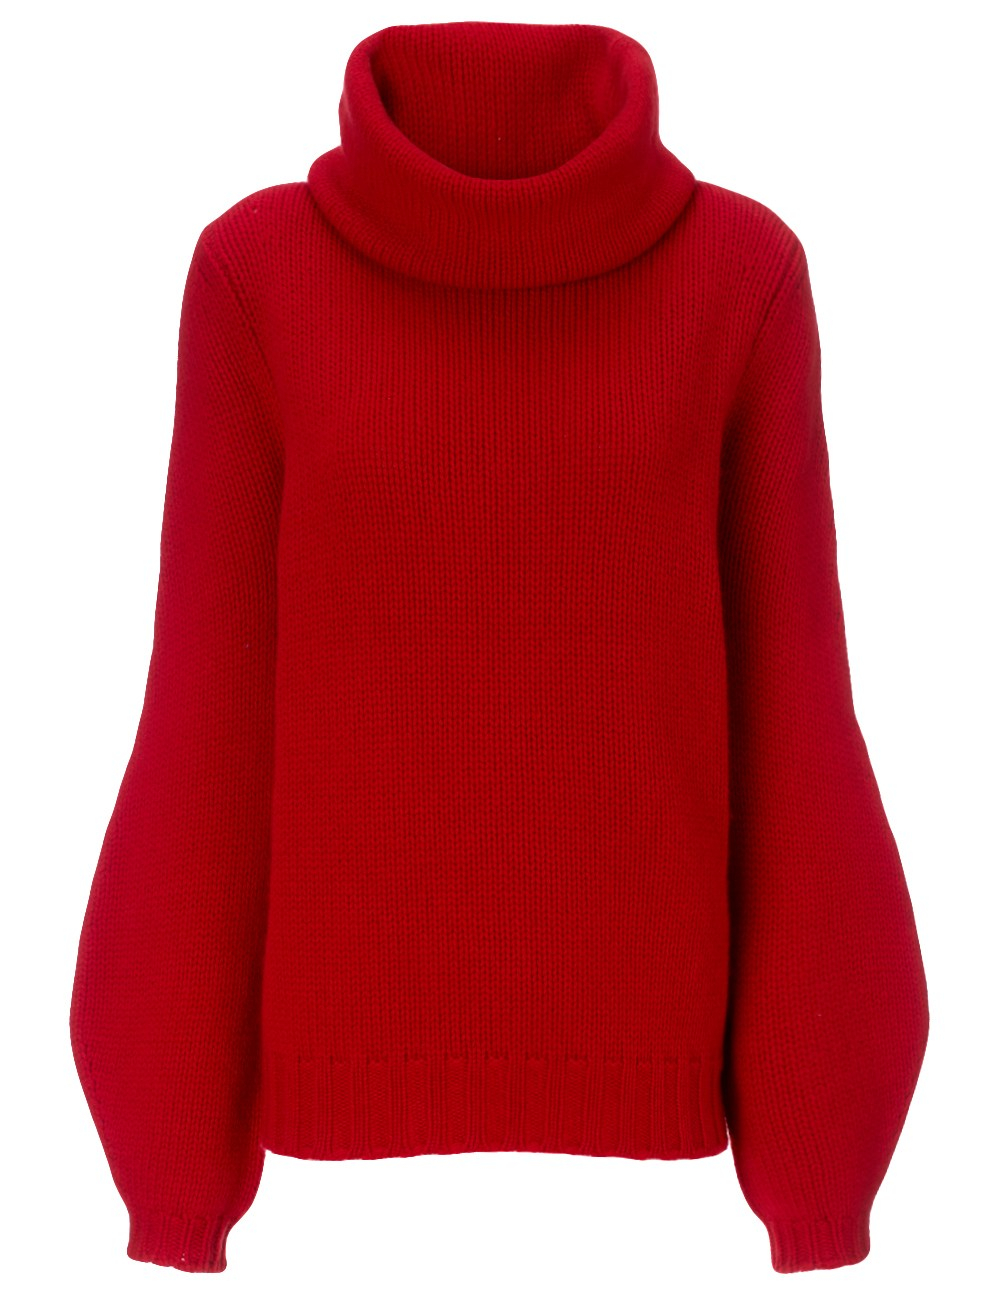 Womens Crew Neck Sweater